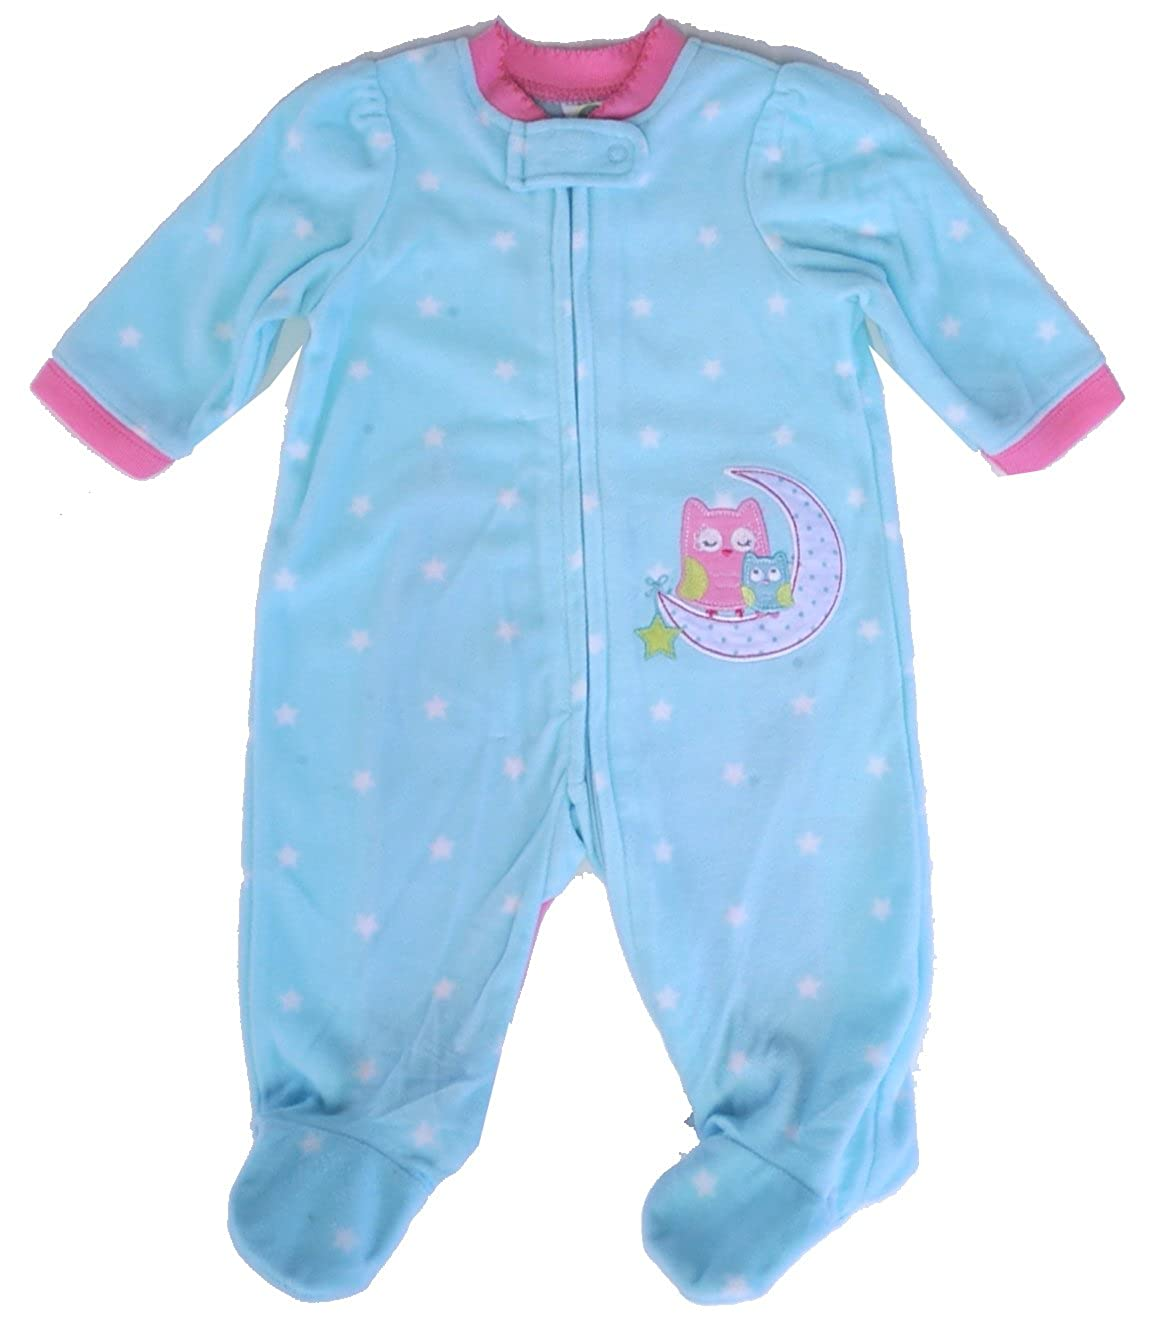 e7fe190e5 Amazon.com  Little Me Minty Moonlight Owl Blanket Sleeper  Clothing